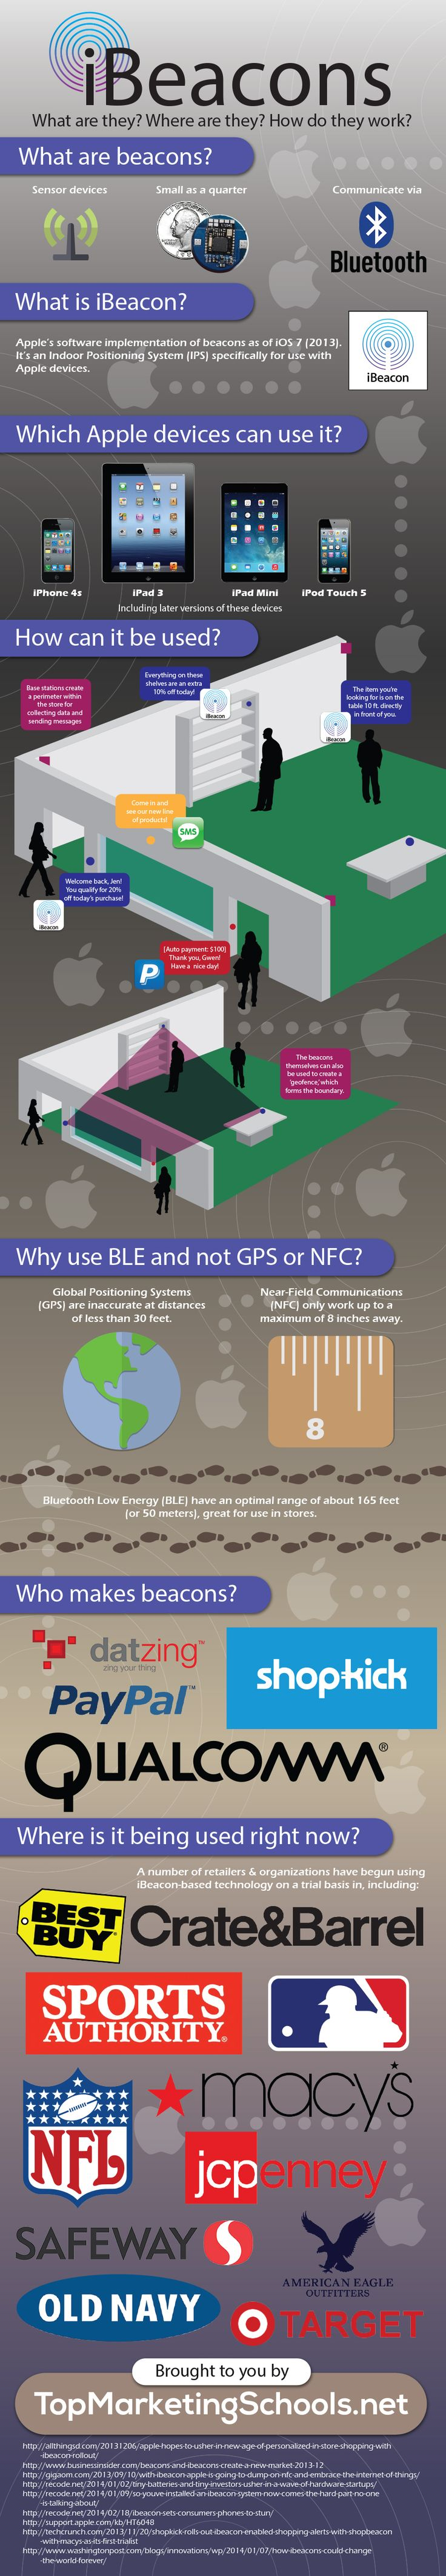 #iBeacons and #Mobile #Marketing